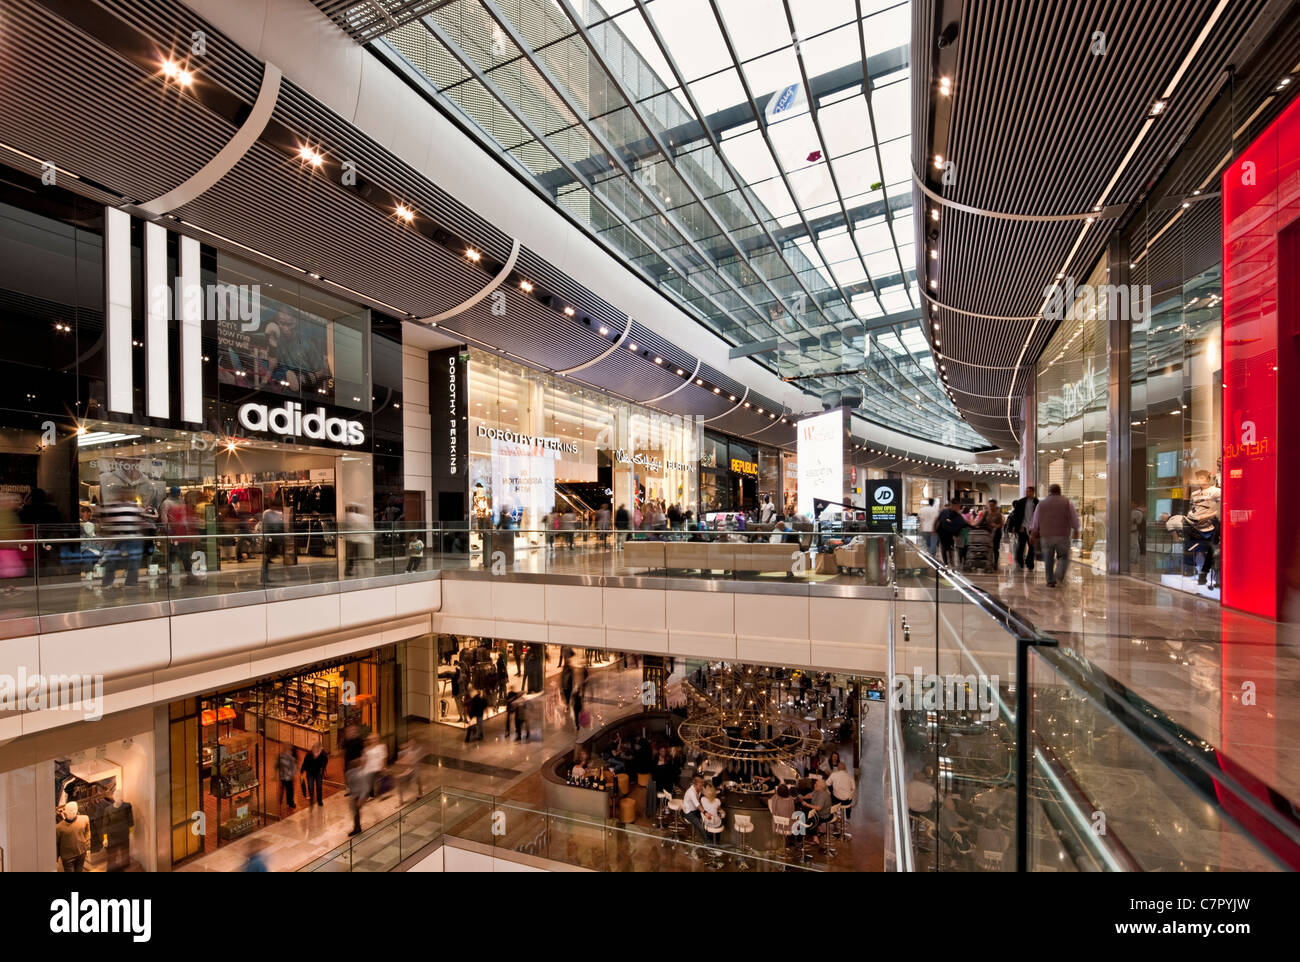 Westfield Shopping Centre - Stratford Stock Photo  39227969 - Alamy 5d8865ab5